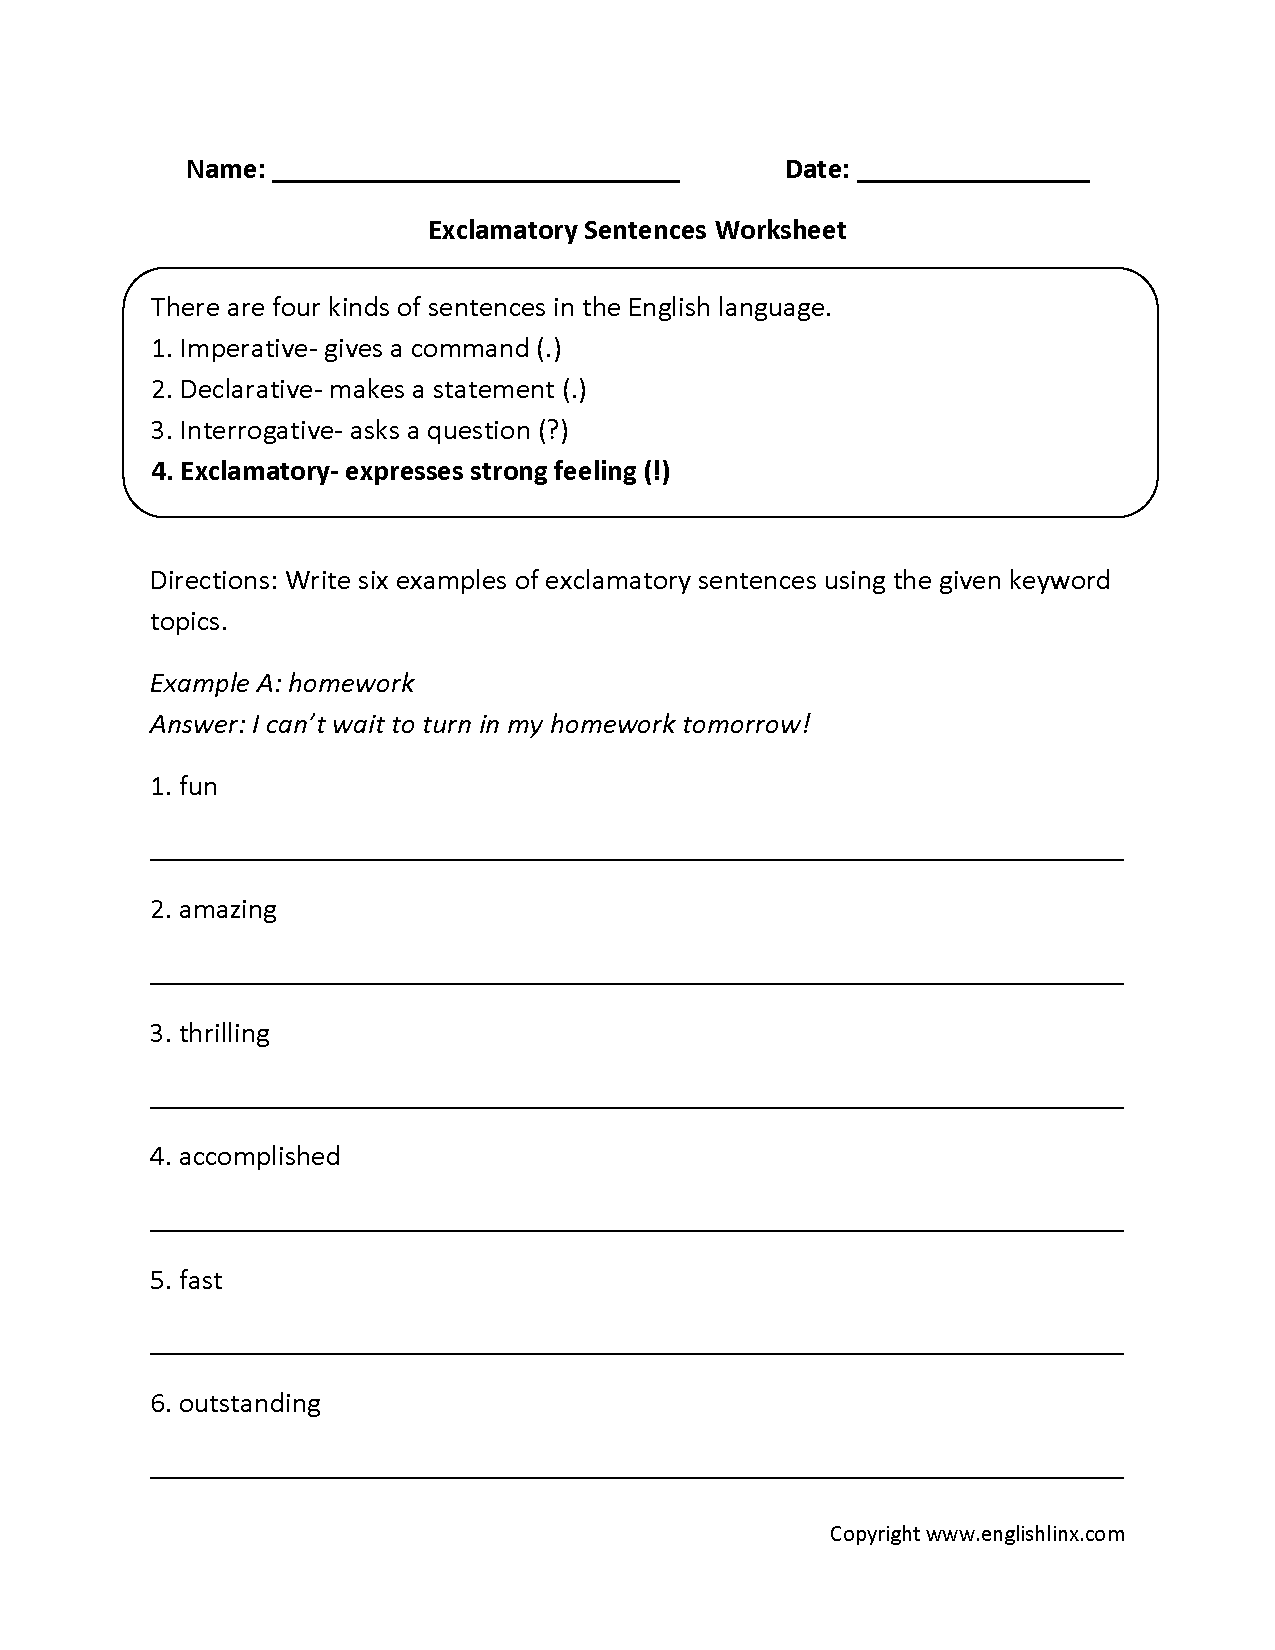 Printables Imperative And Exclamatory Sentences Worksheet sentences worksheets types of exclamatory worksheets